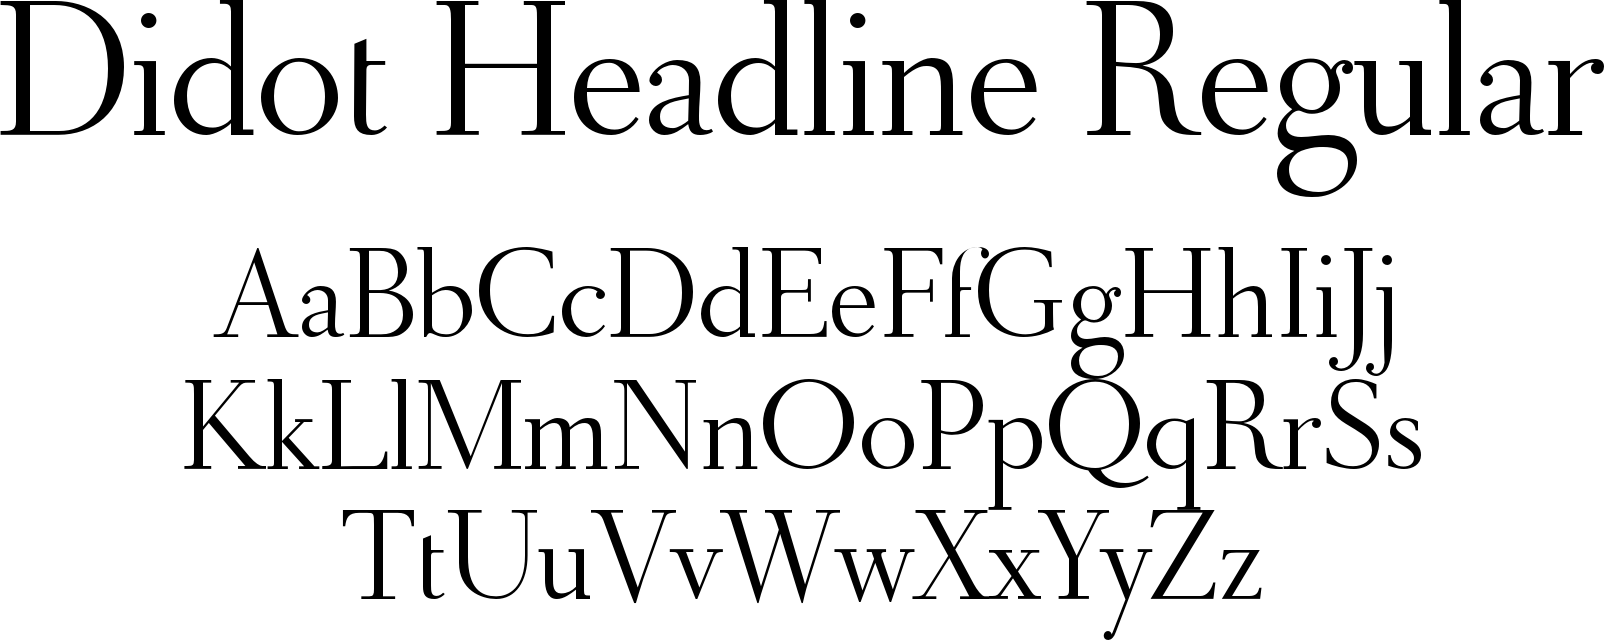 Didot Headline Regular